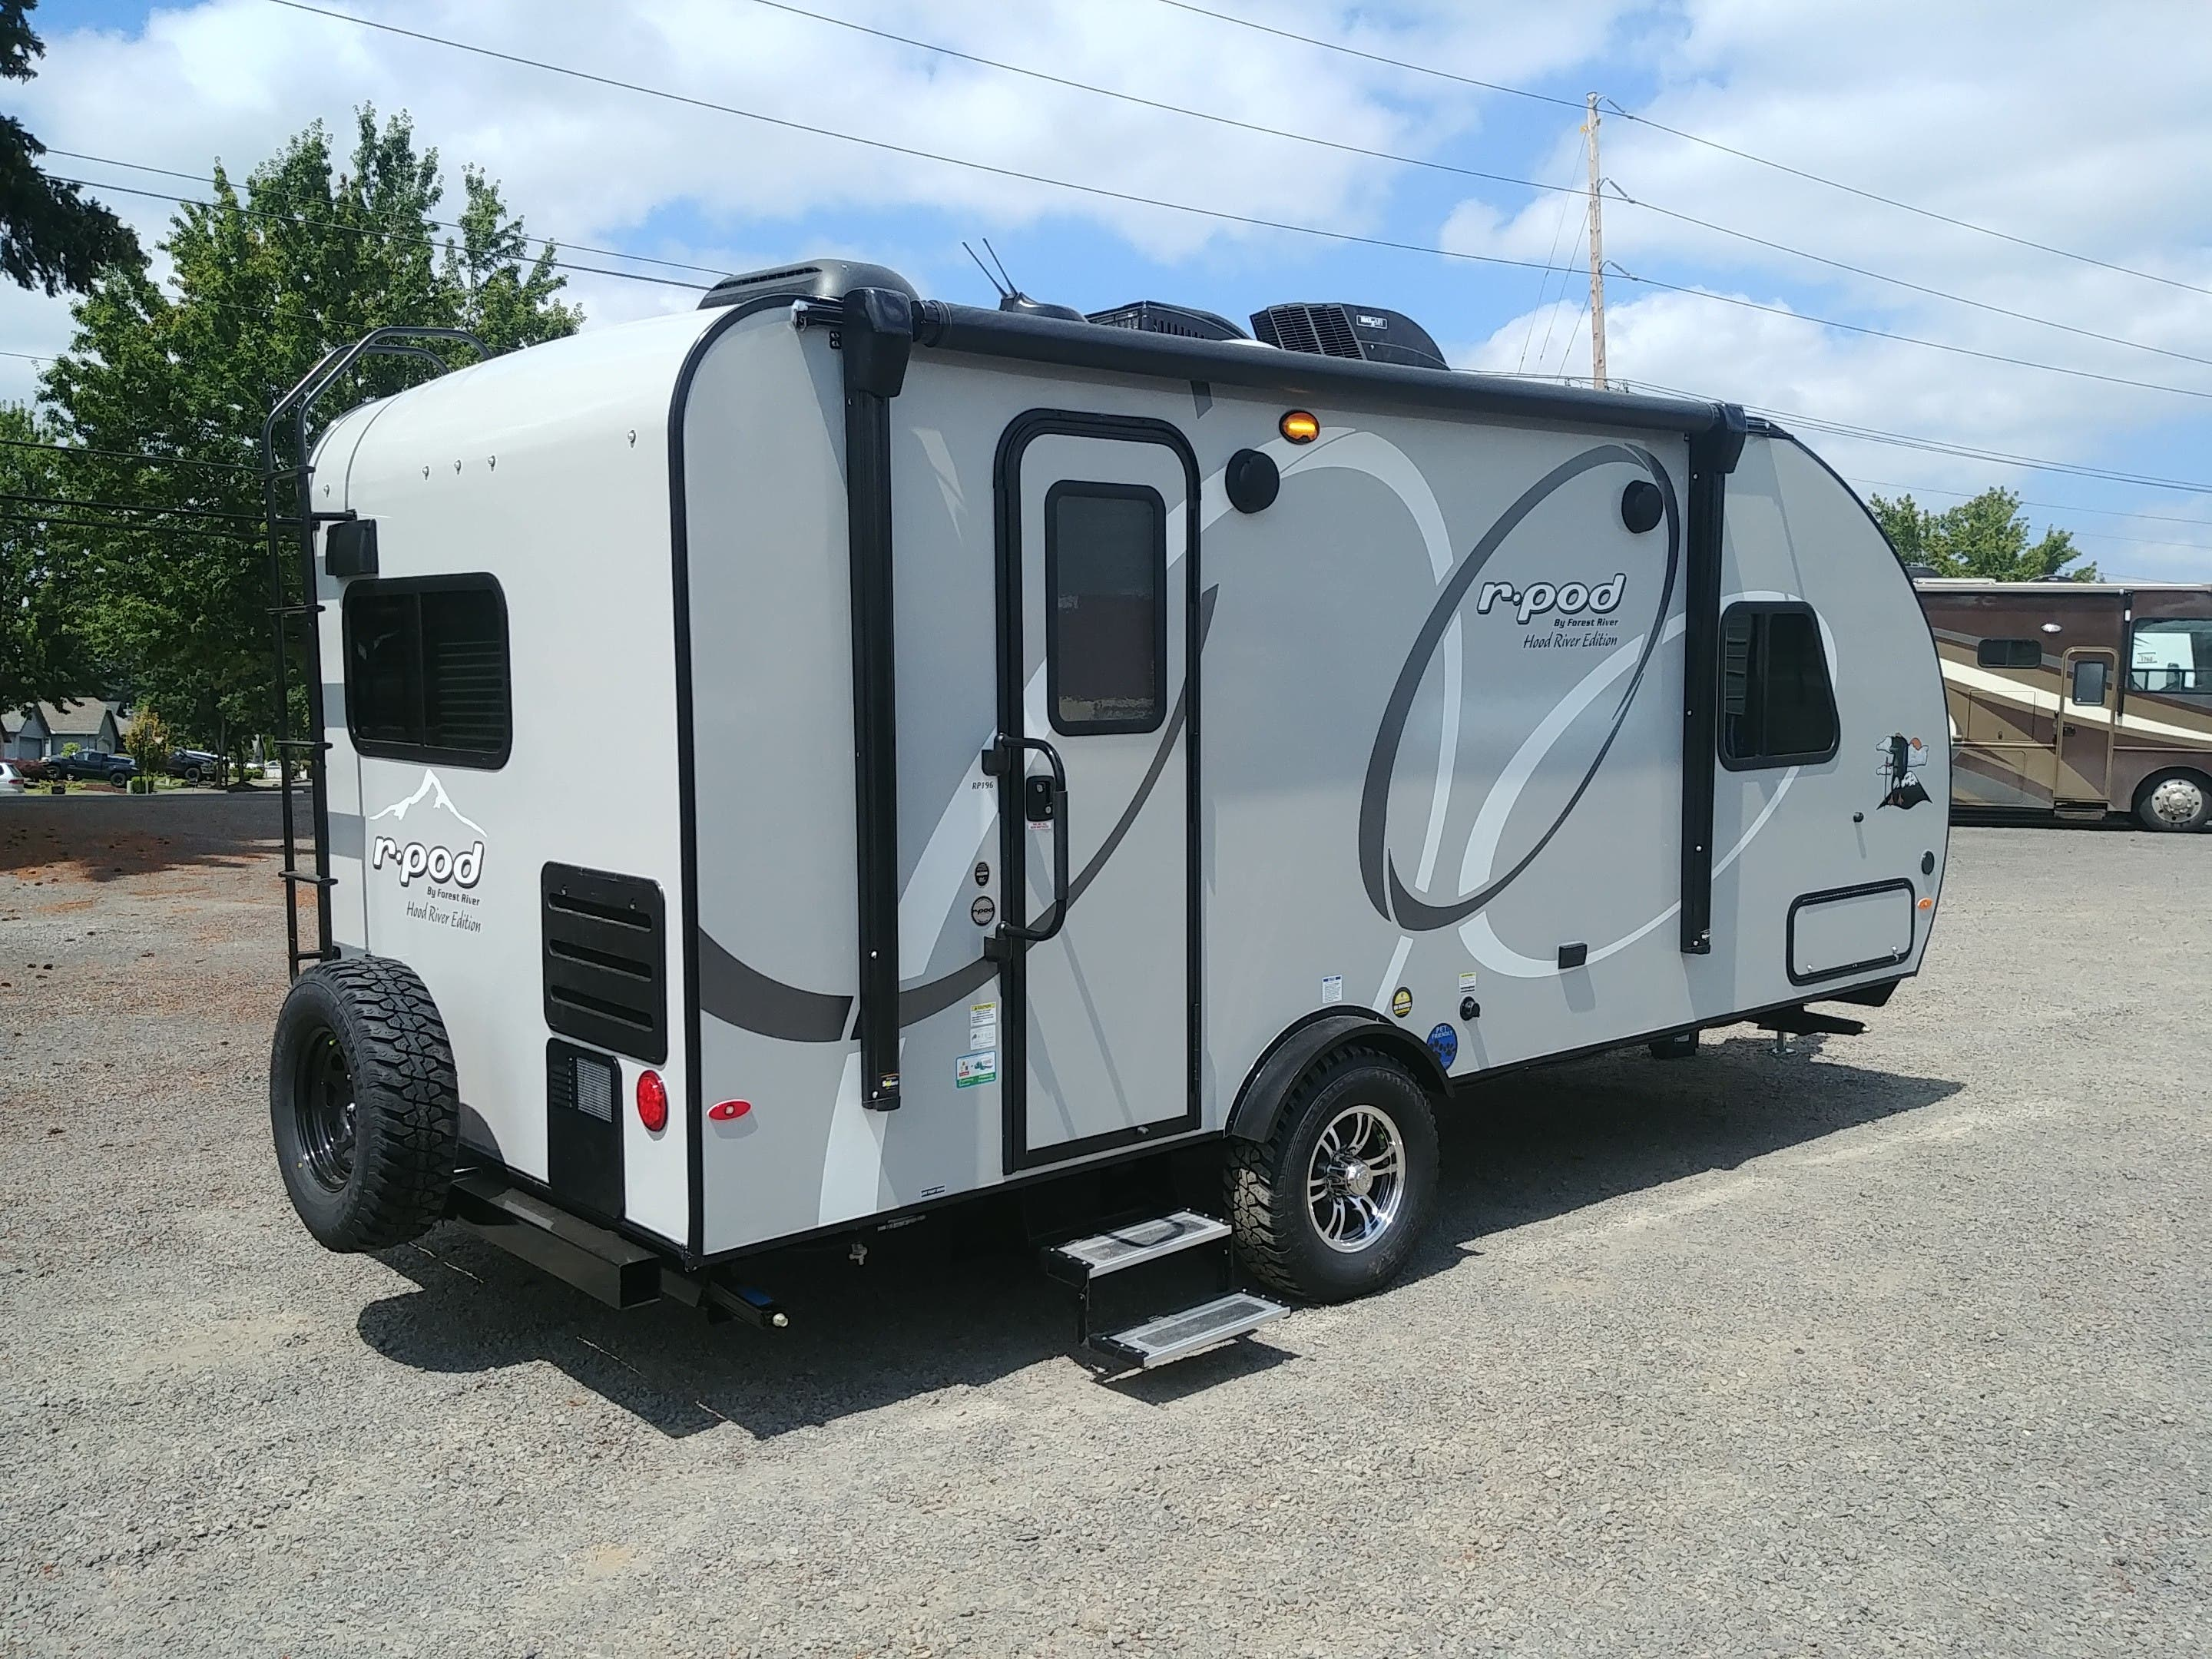 2021 Forest River R-pod -196 - Tualatin - 3471 - Funtime ...